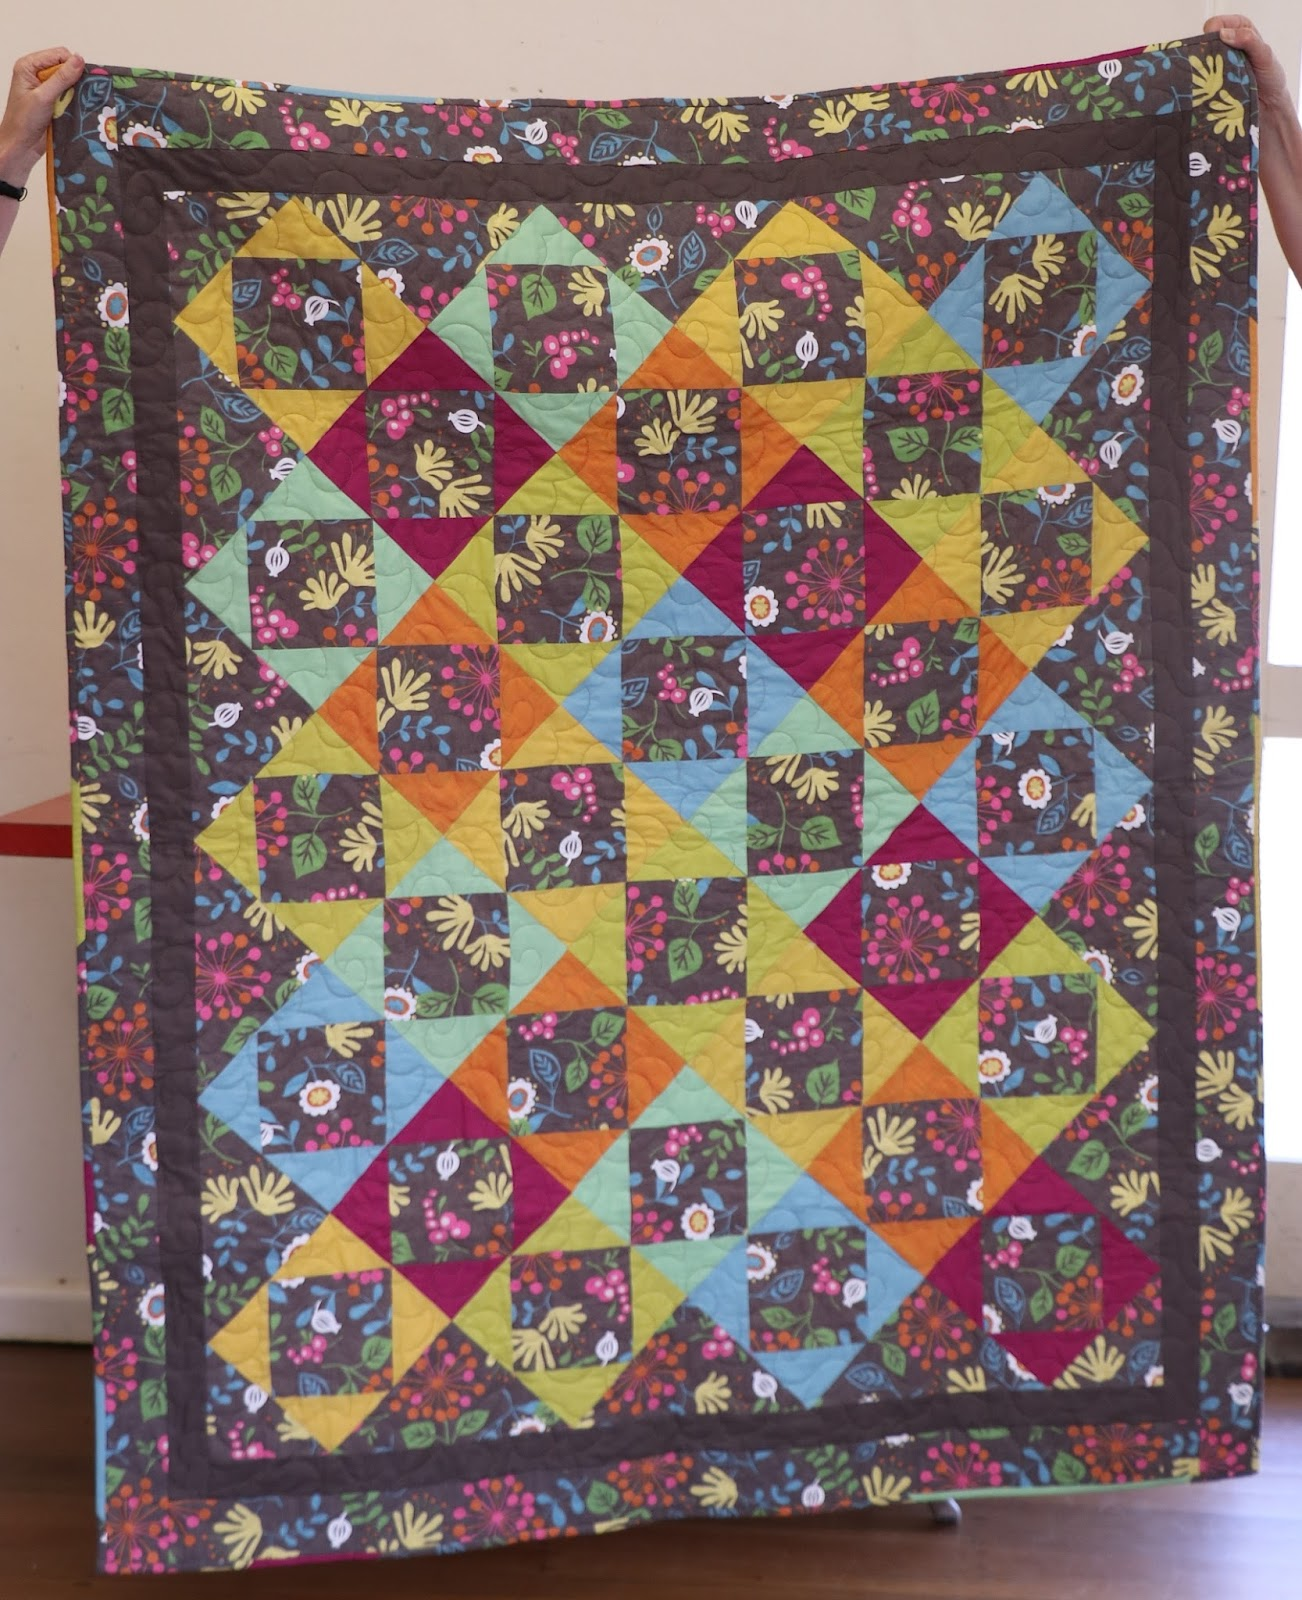 Fairholme Quilters: Show and tell ...